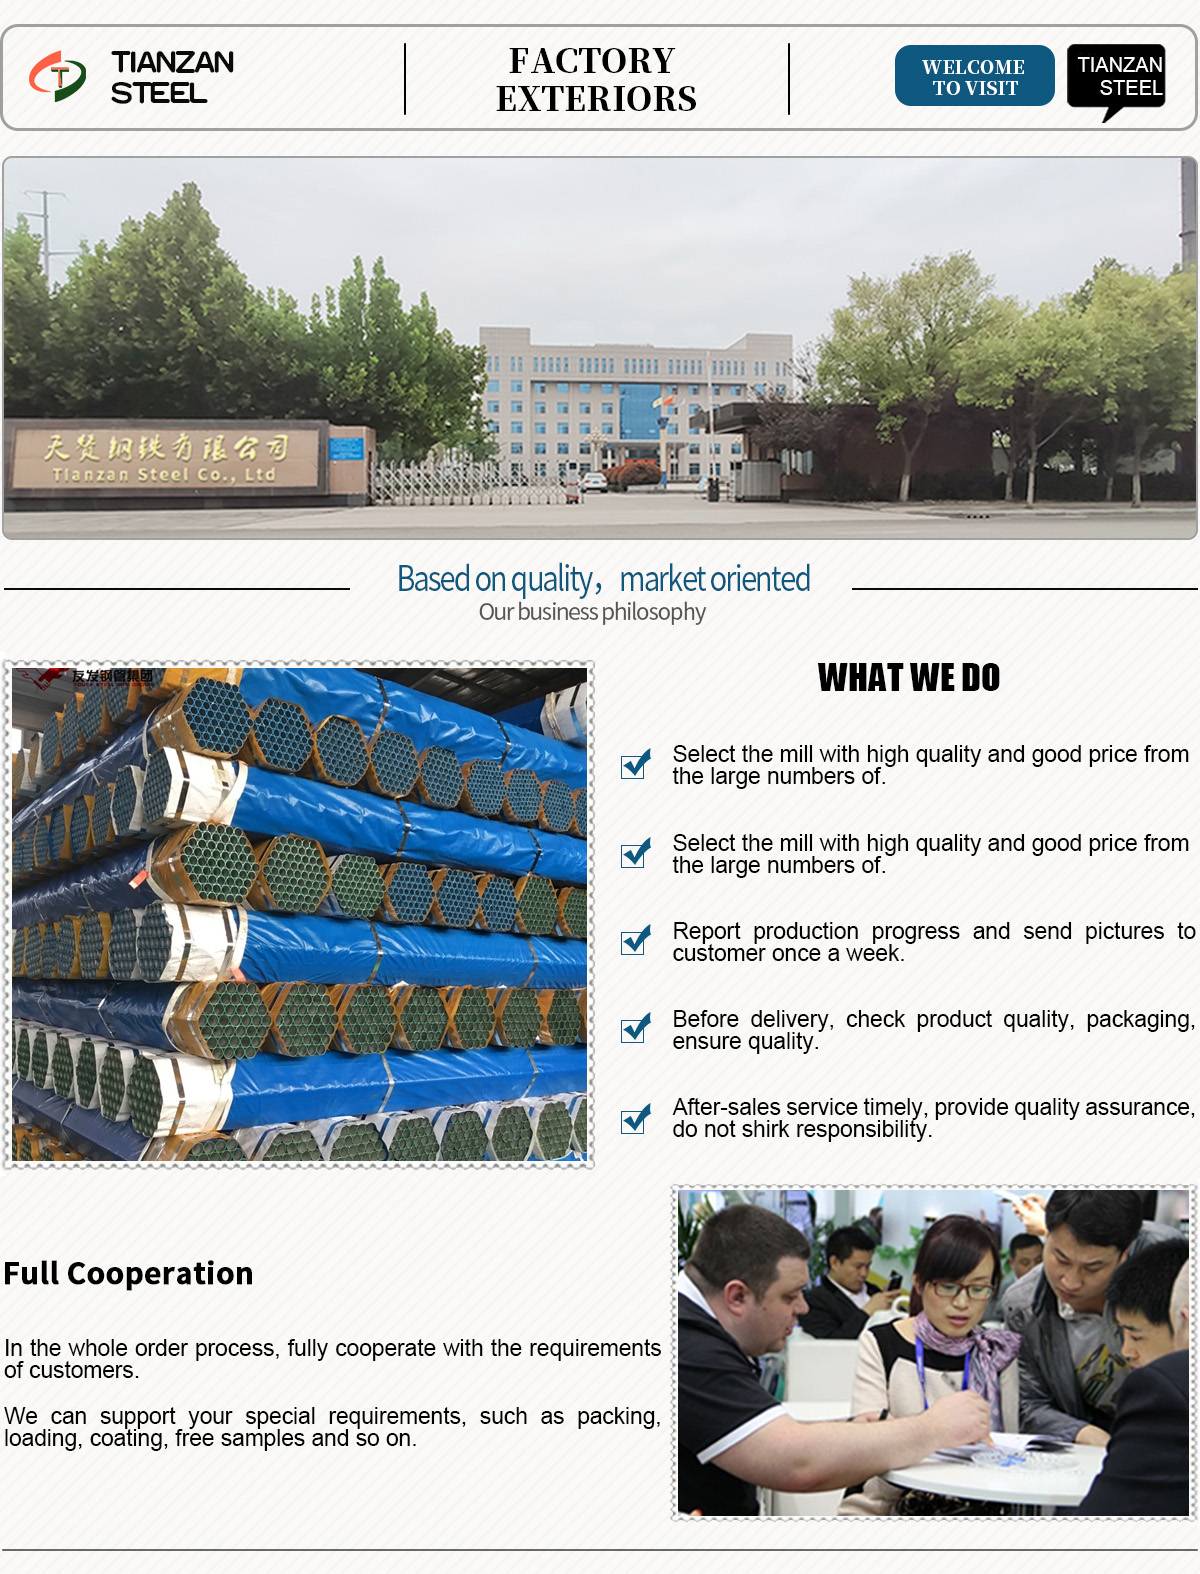 Tianzan steel galvanized pipe astm a153 Galvanized Carbon Steel Seamless Pipe And Tube